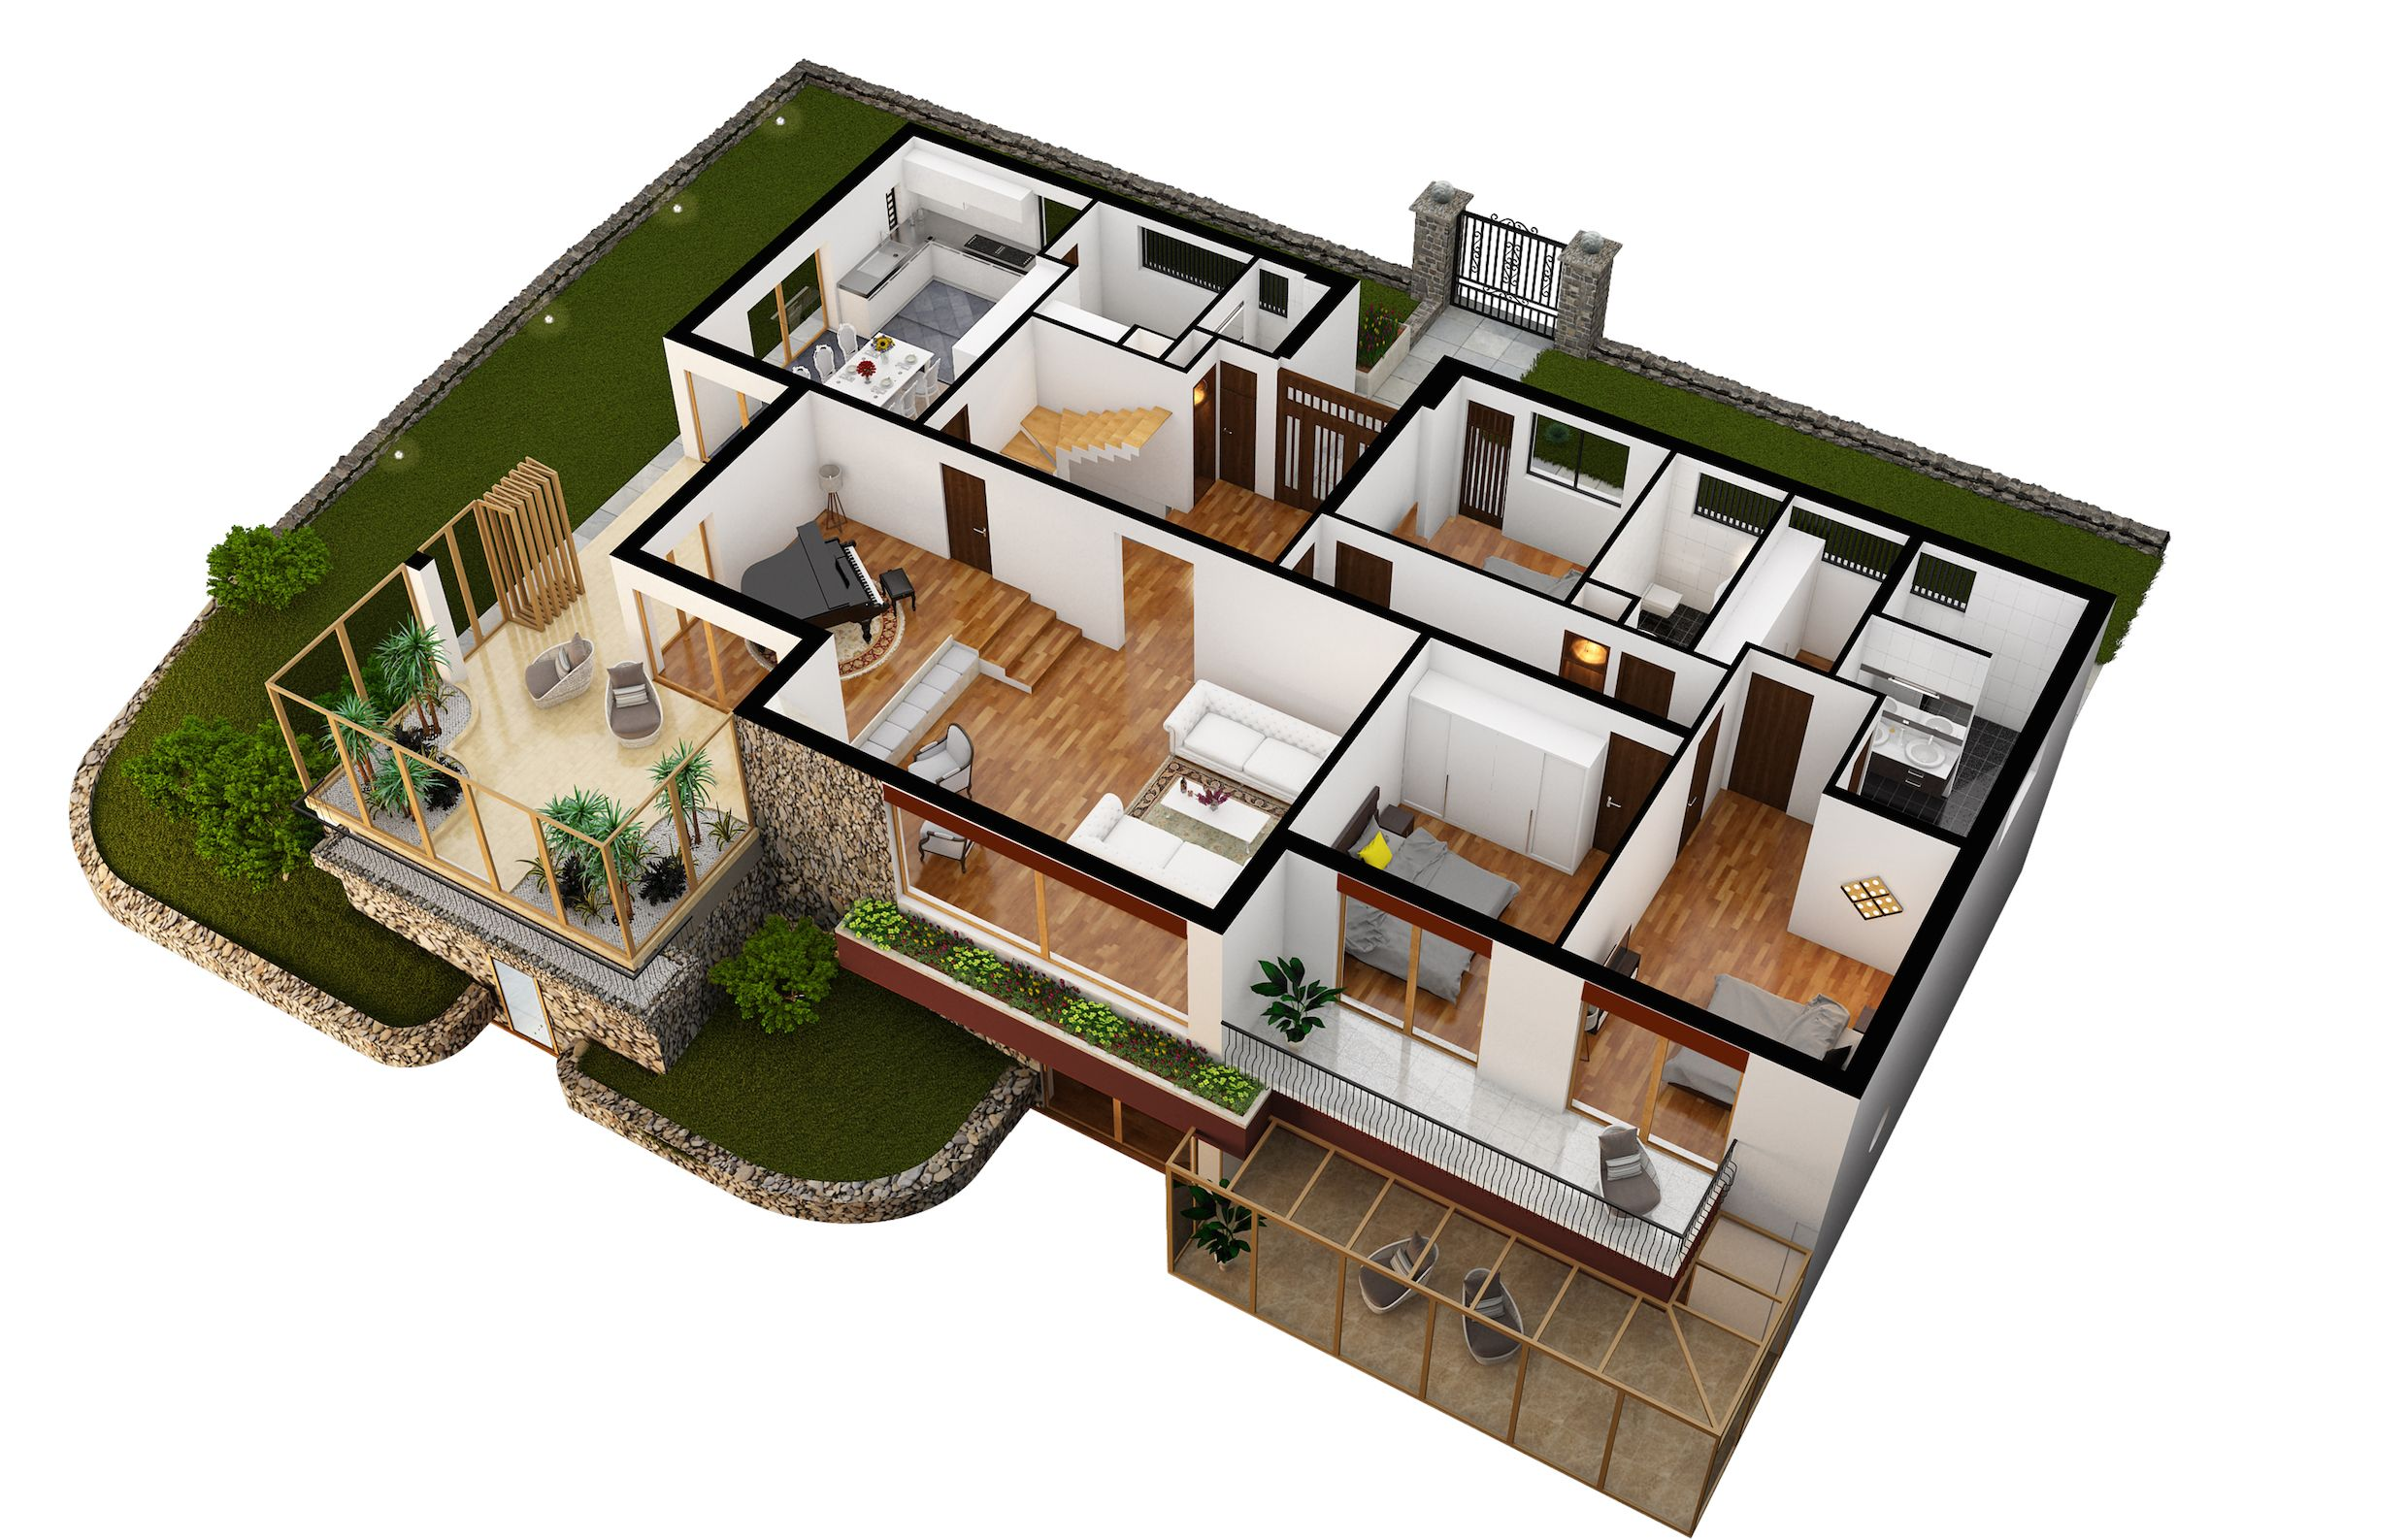 Main floor 3d plan of villa eureka lugano